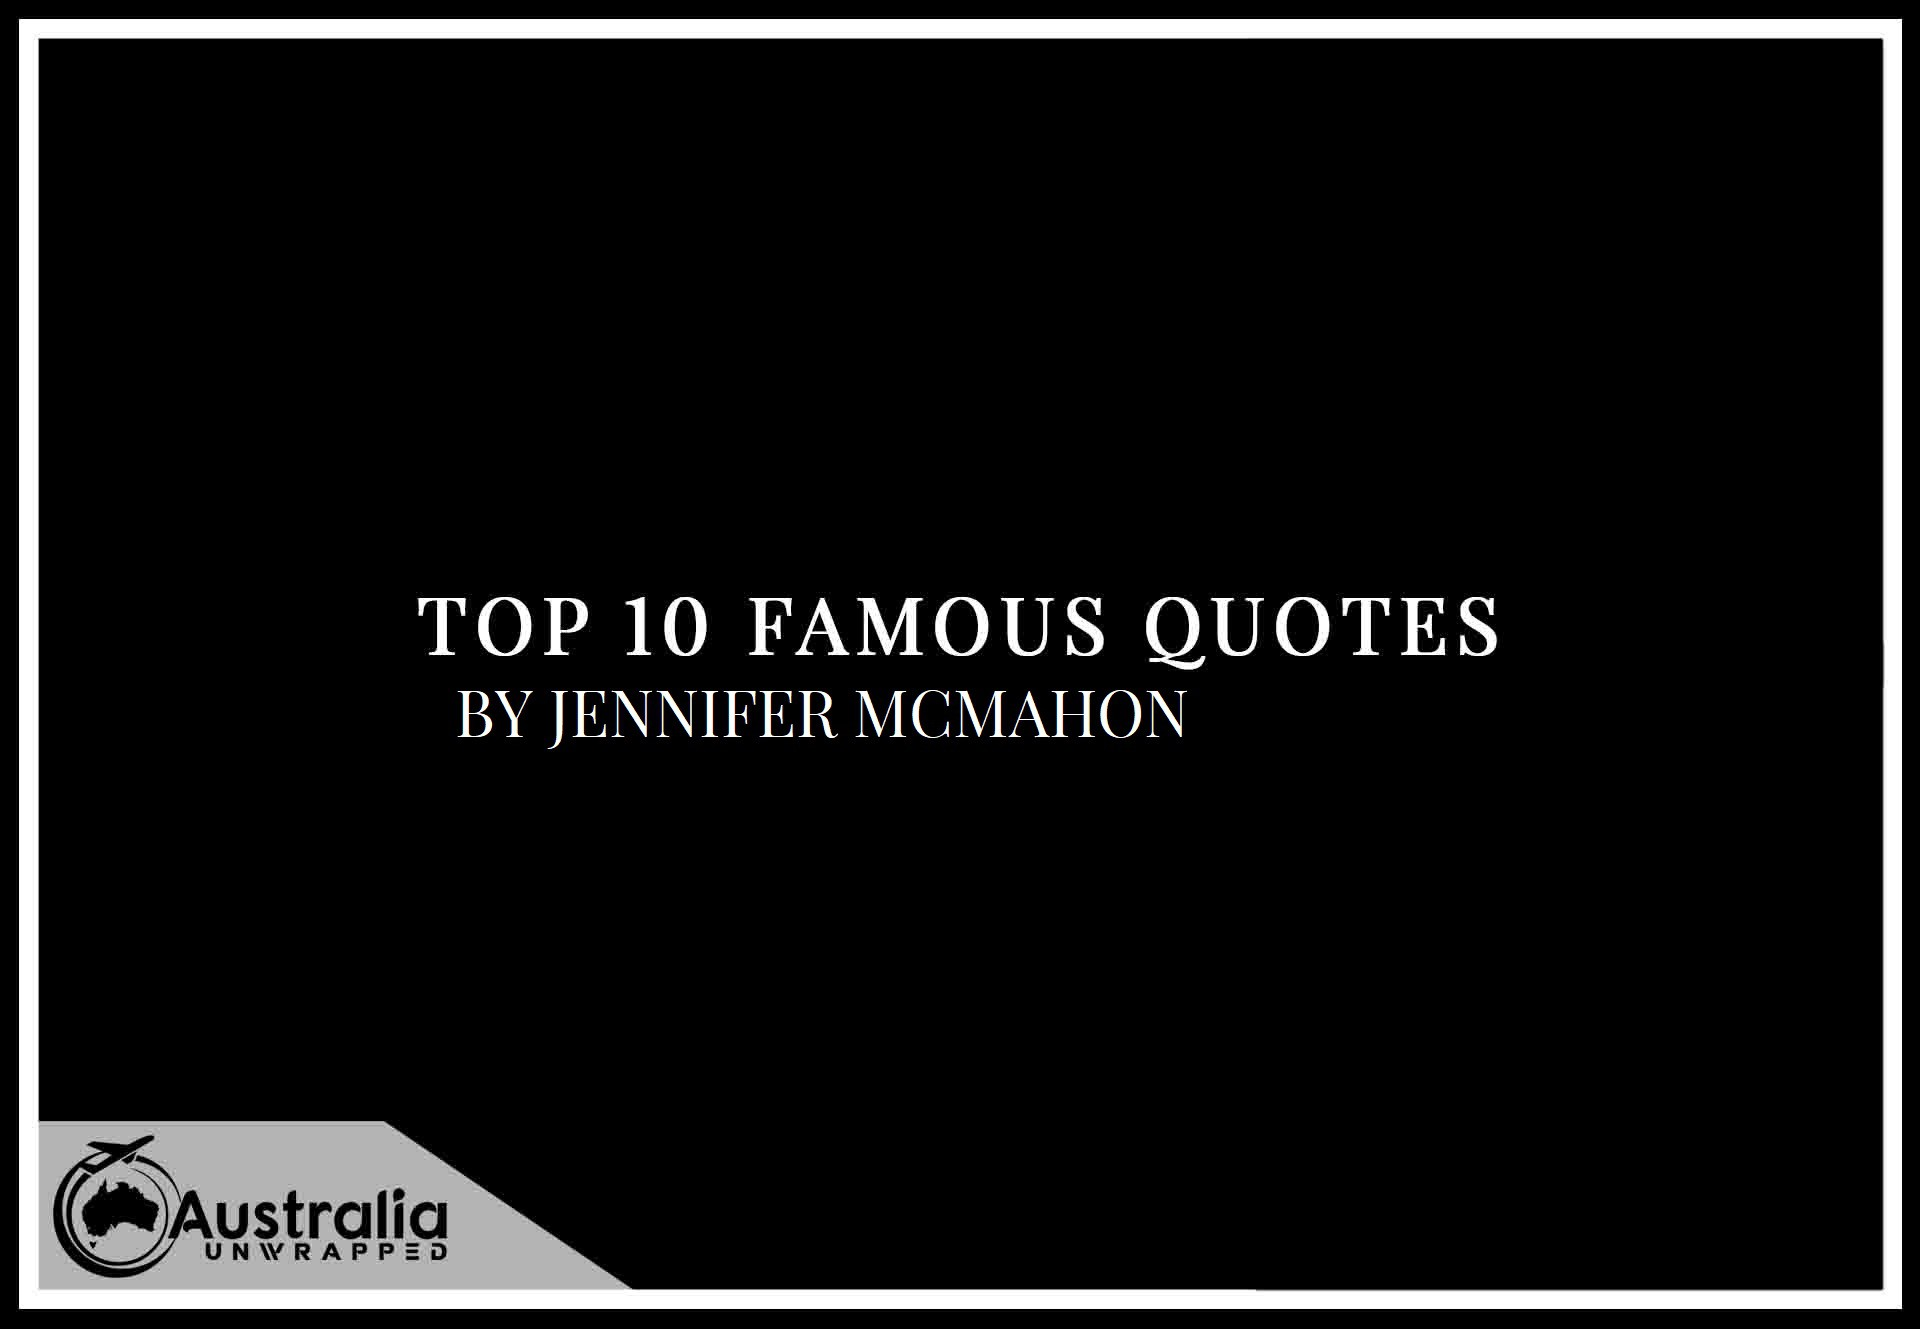 Top 10 Famous Quotes by Author Jennifer McMahon